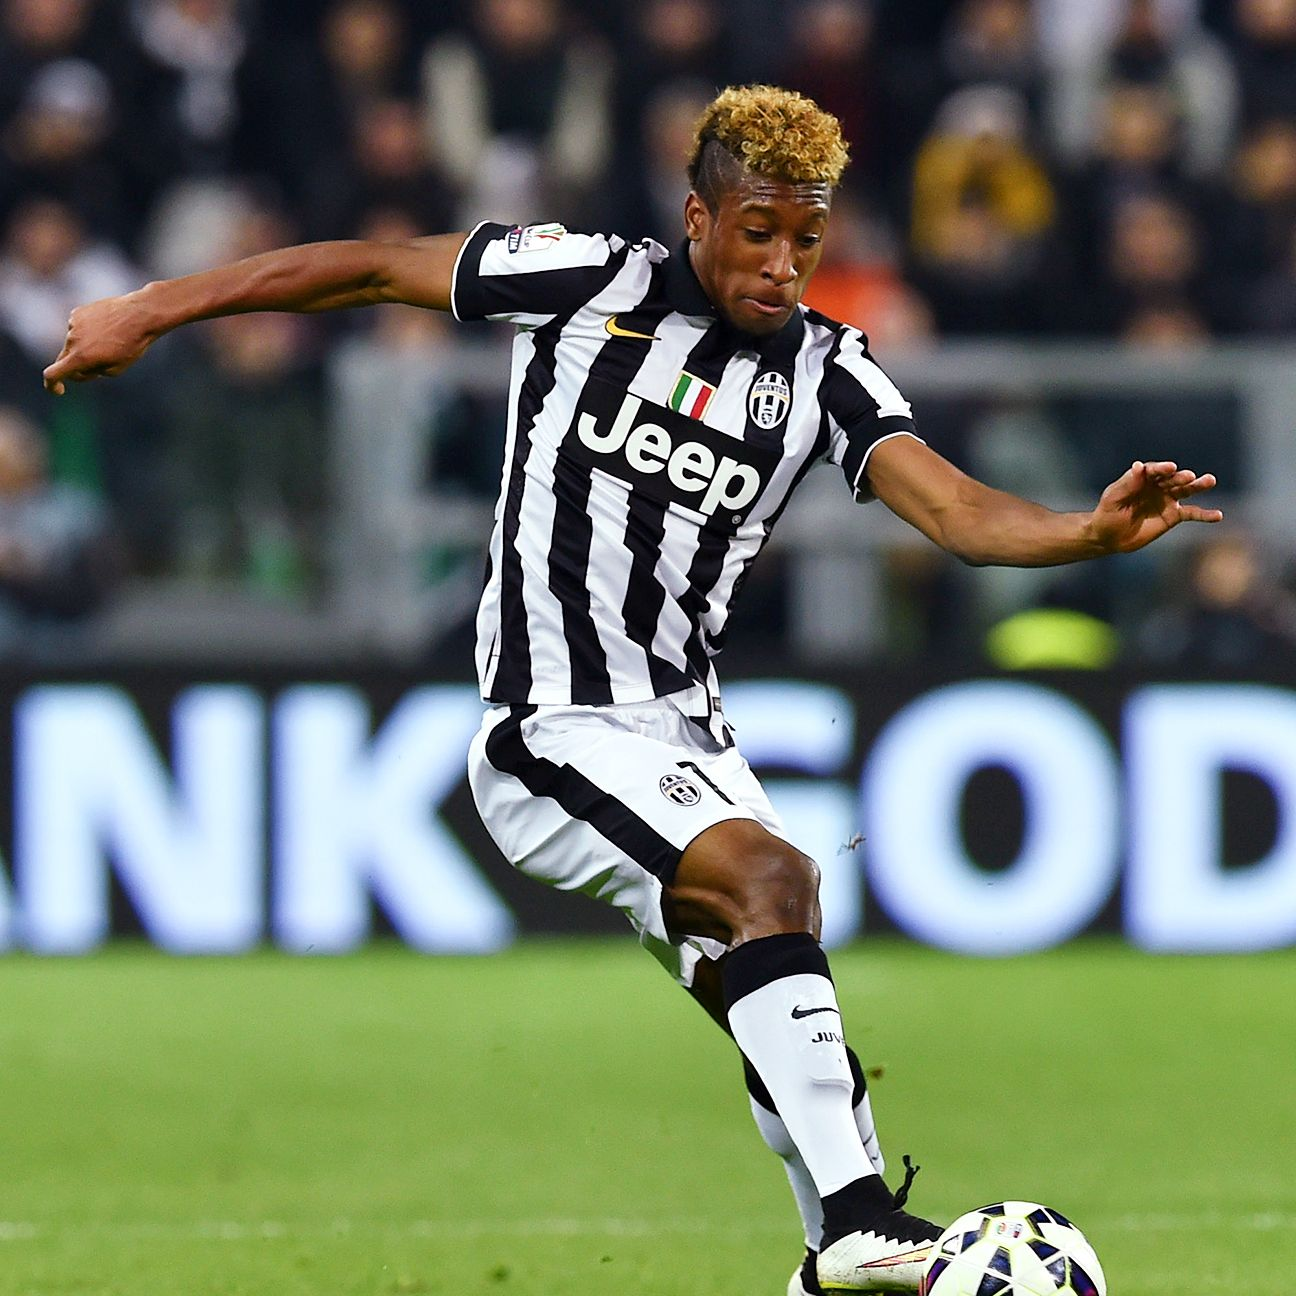 Kingsley Coman thrived in his first season at Juventus after transferring from PSG.